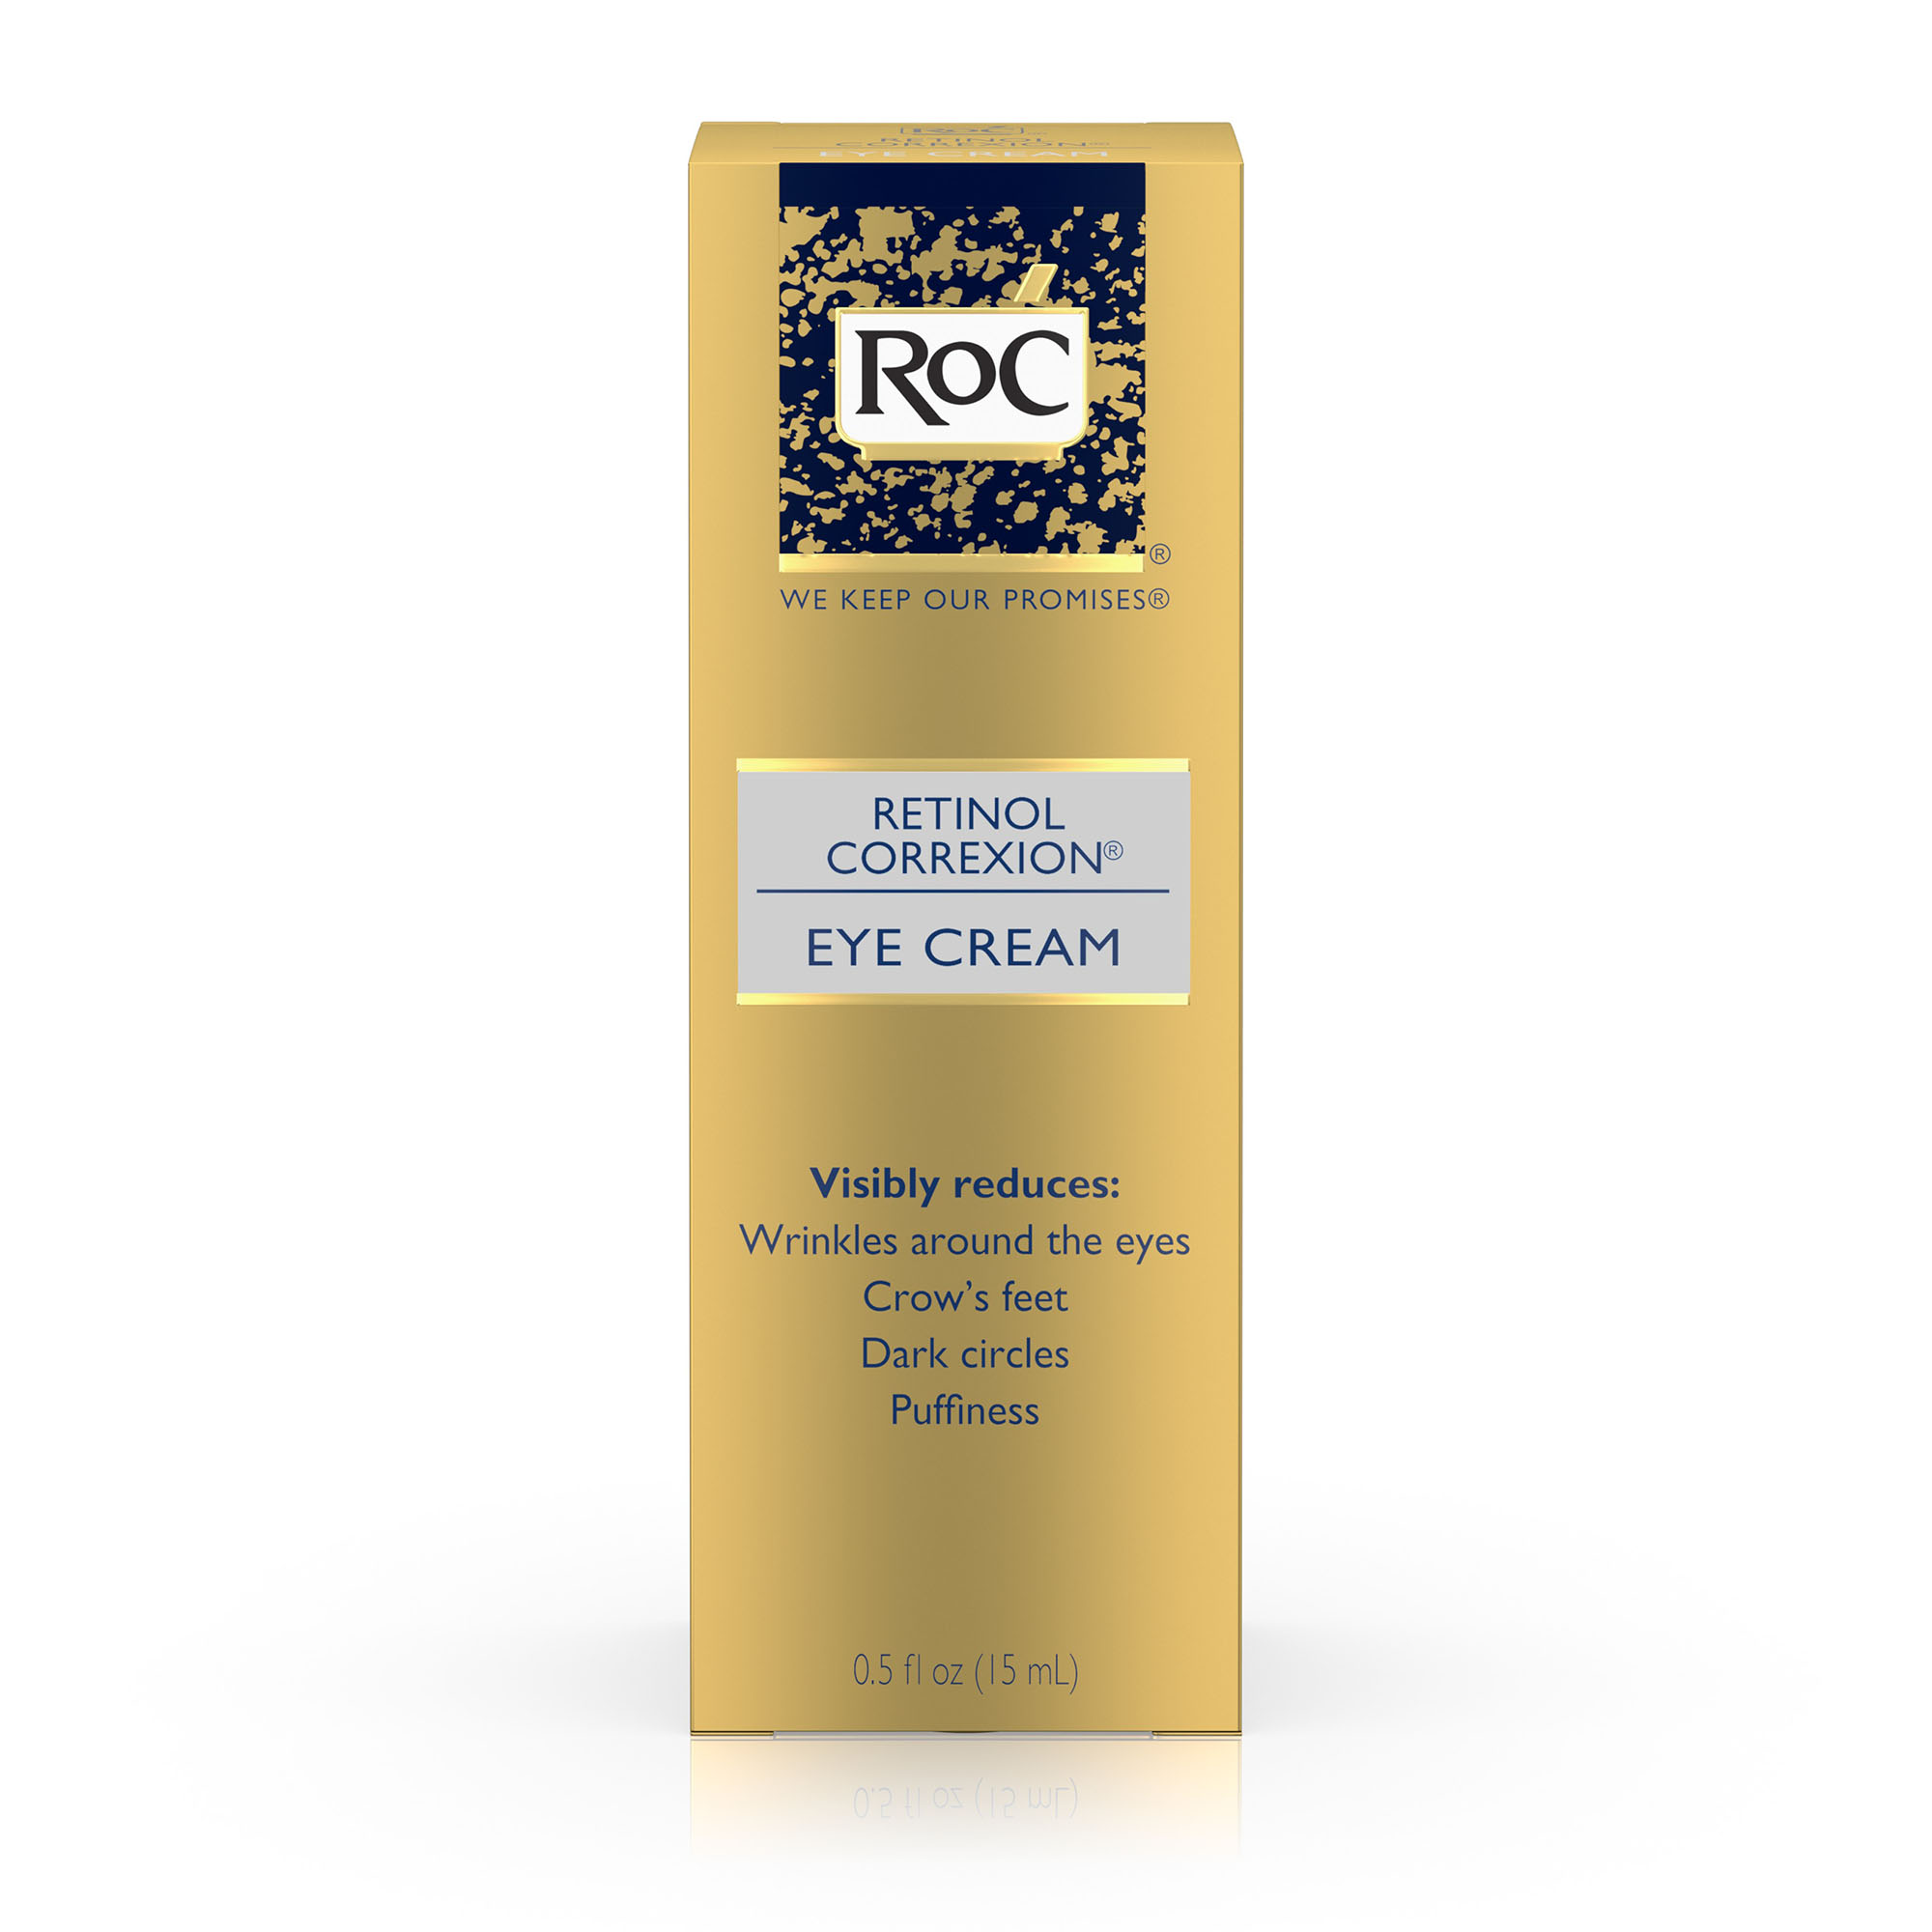 RoC Retinol Correxion Anti-Aging Eye Cream Treatment